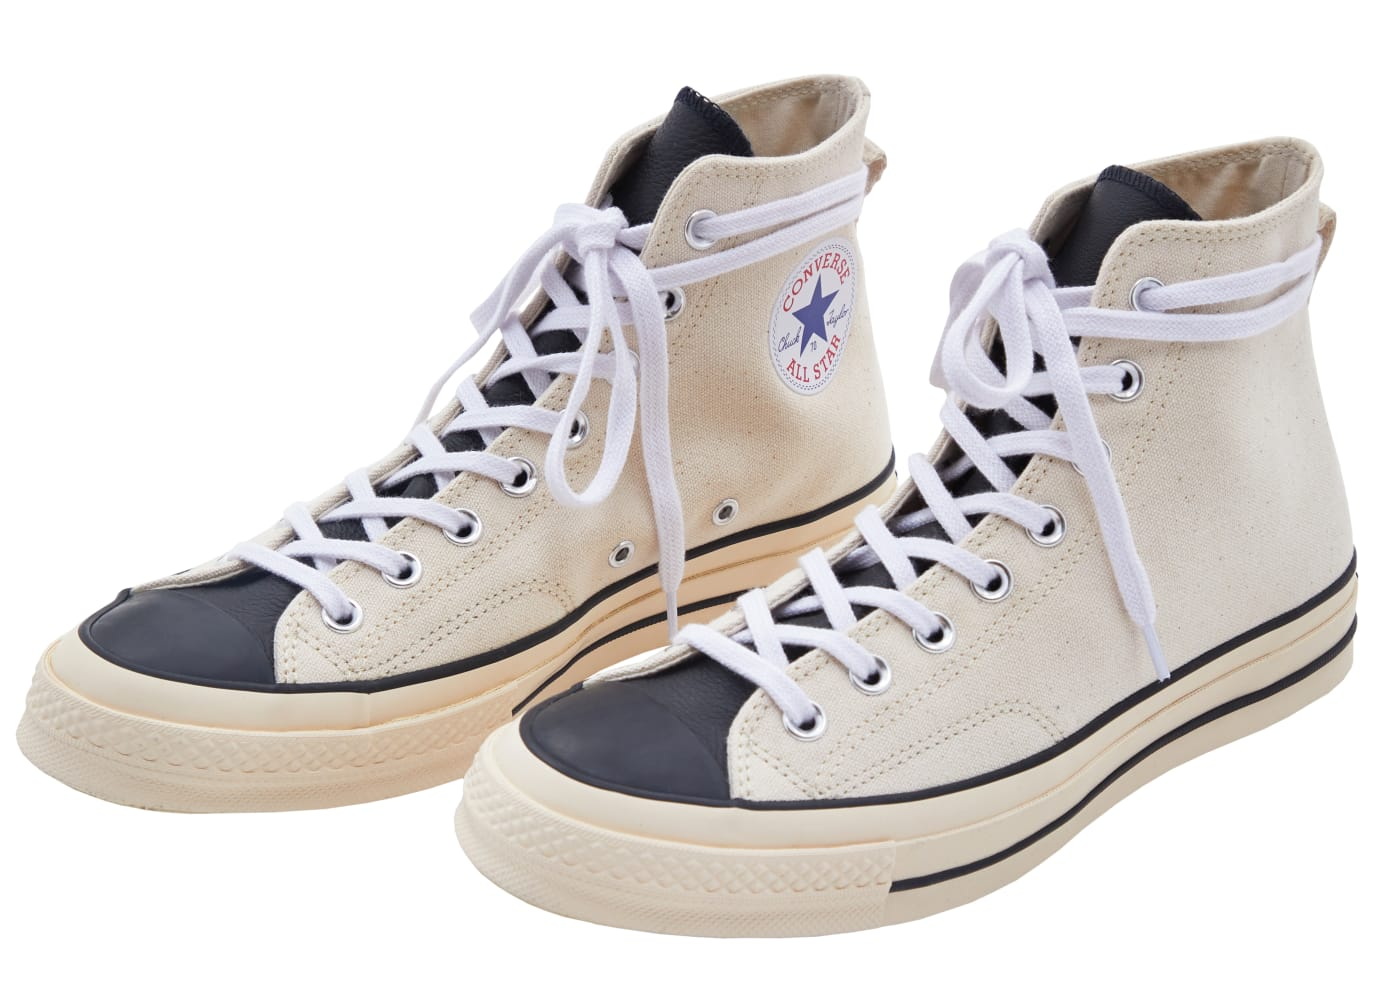 8e334cbbac0a Fear of God Essentials x Converse Chuck 70 Release Date